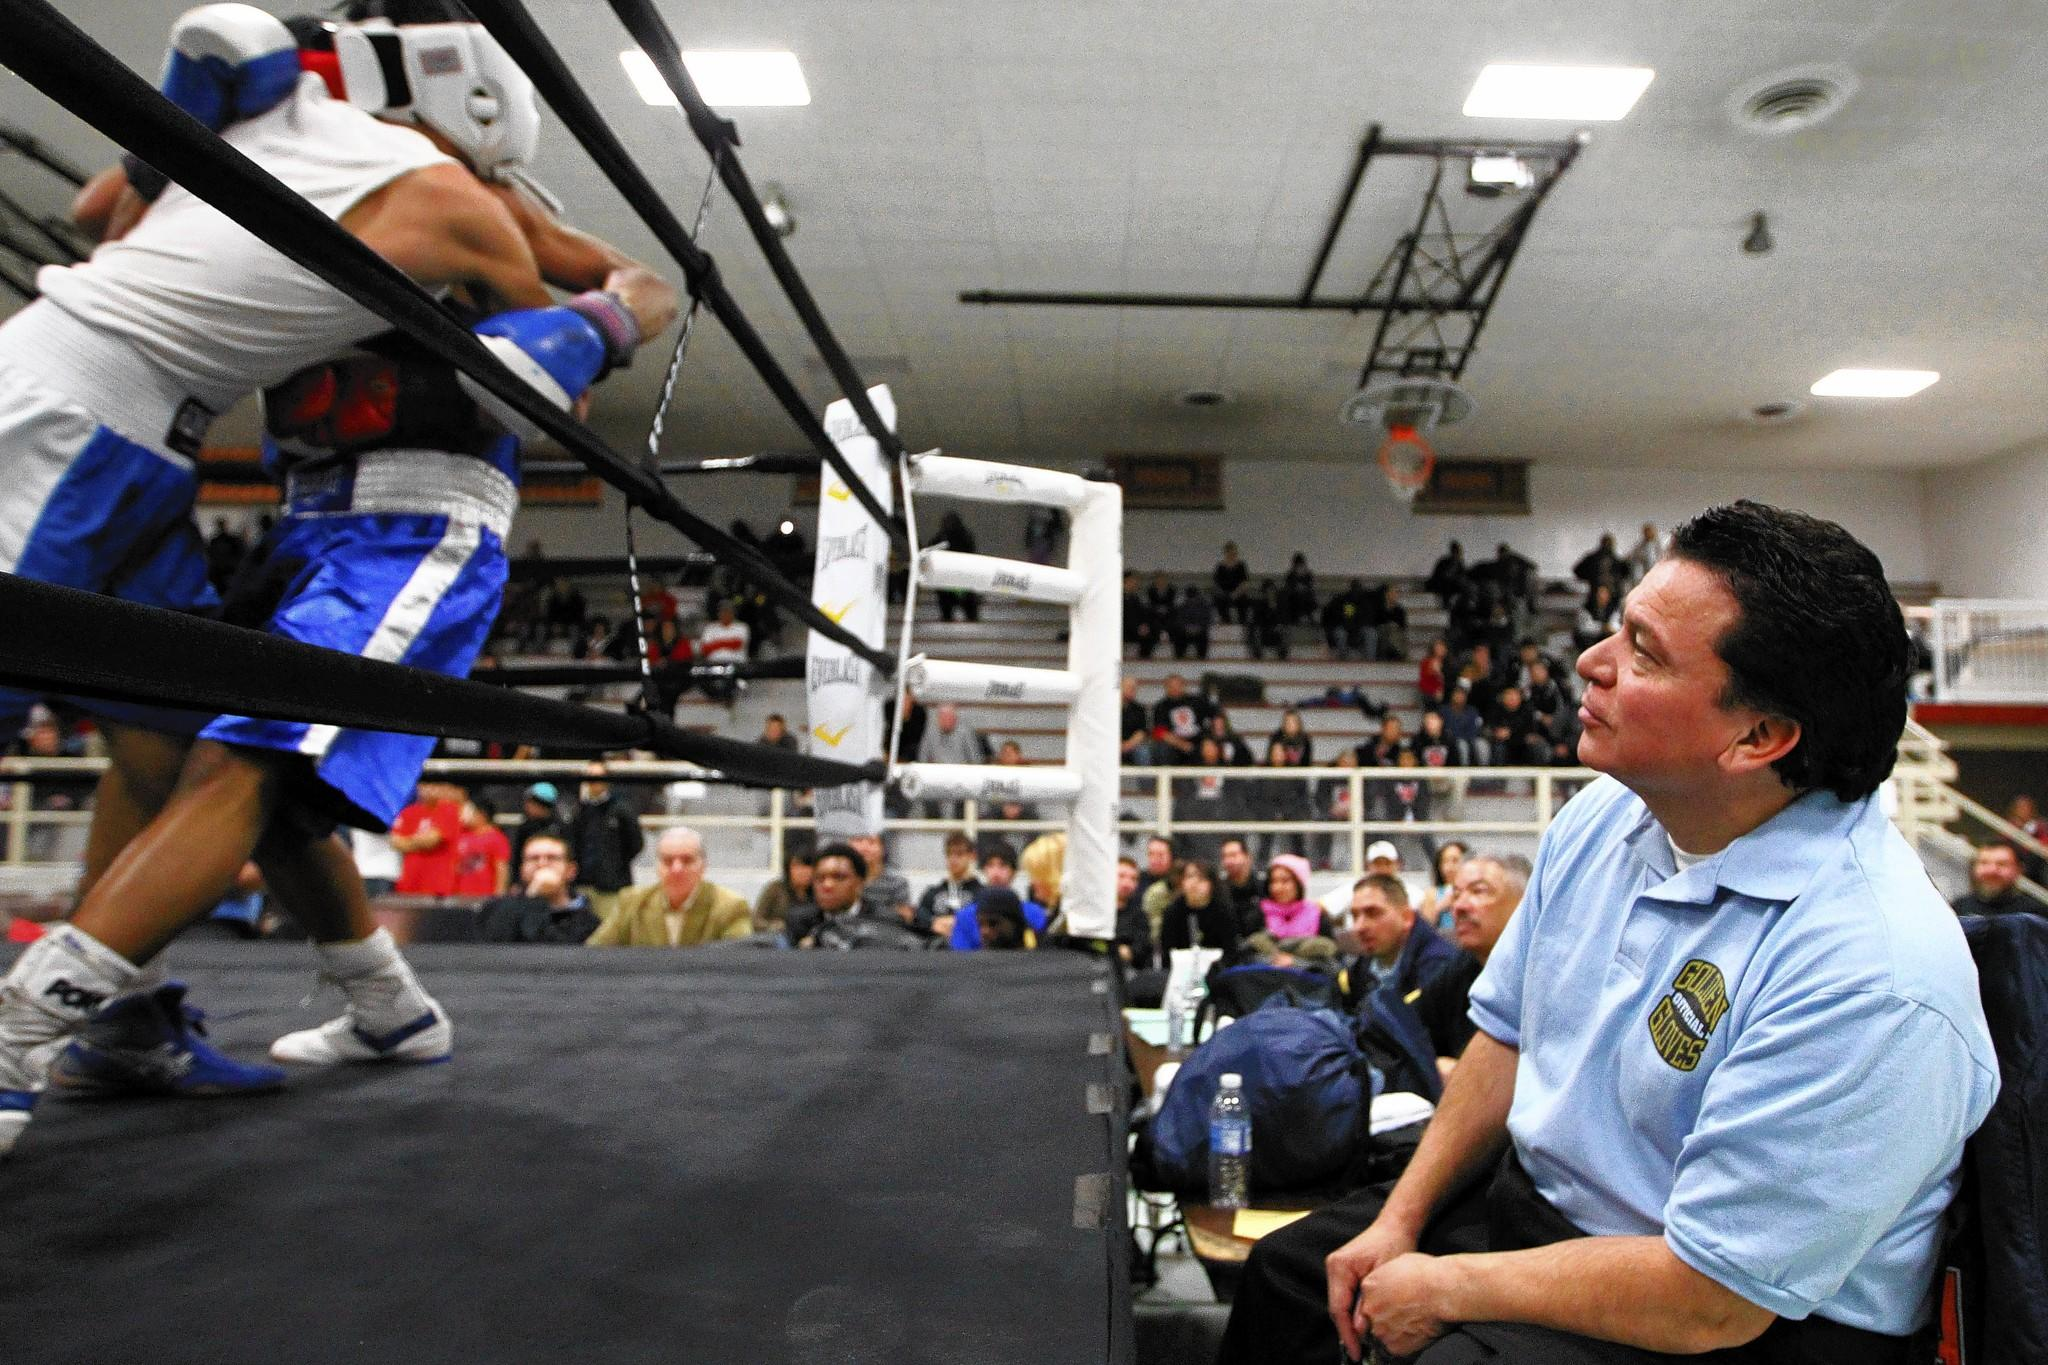 Joel Campuzano, right, watches a Golden Gloves boxing match in Cicero last year.